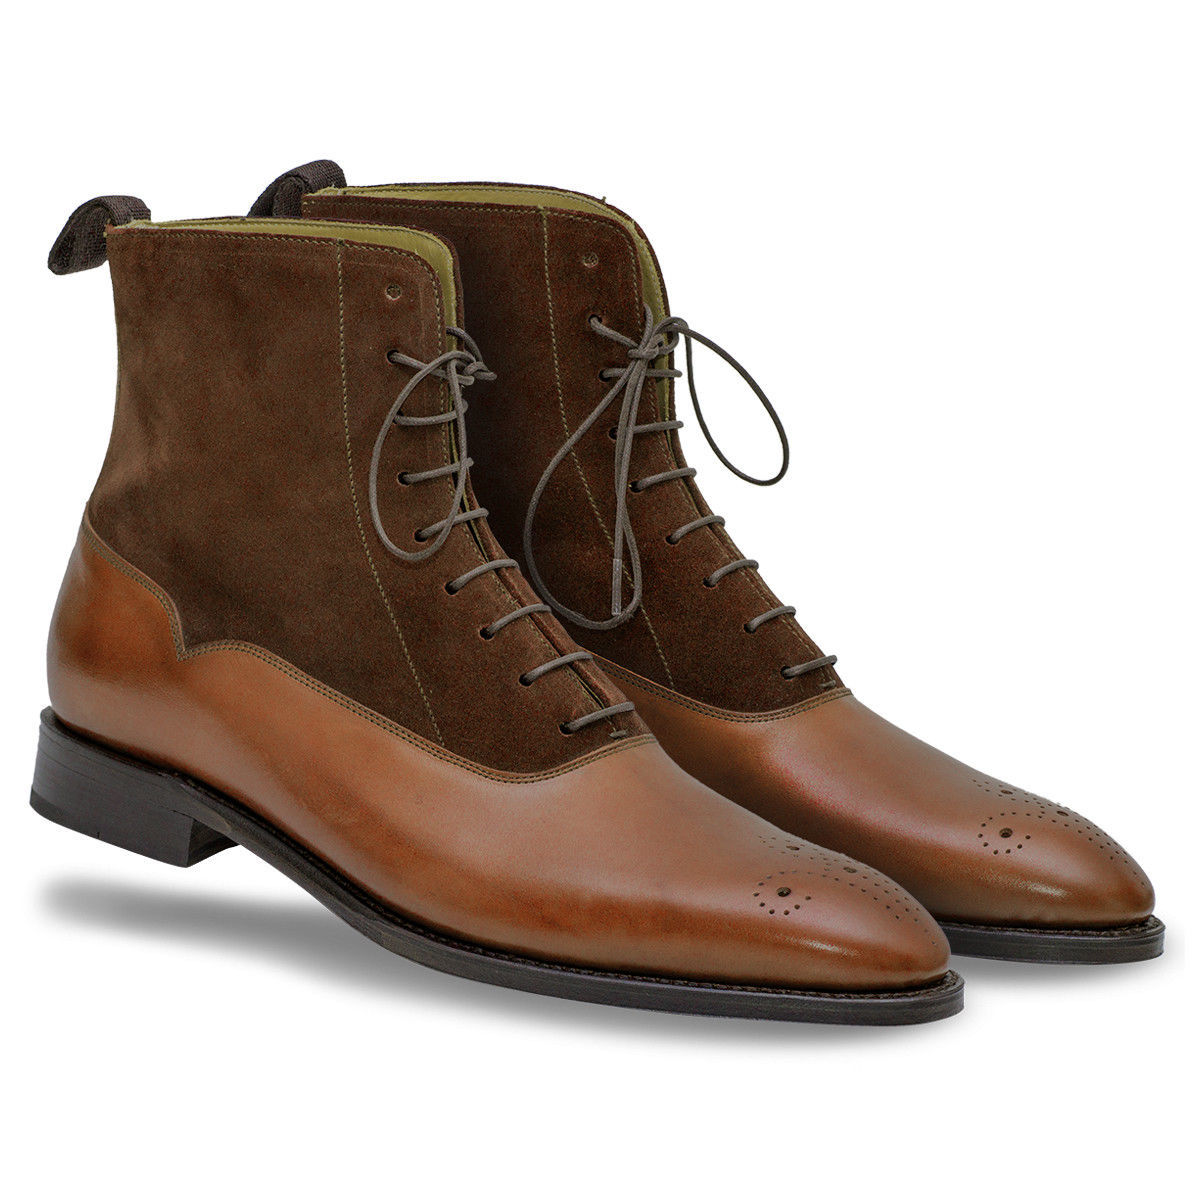 61e9335ed46 Mens Ankle High Brogue Dress Boots Leather Dress Tuxedo Formal Suede Boots  from Rangoli Collection